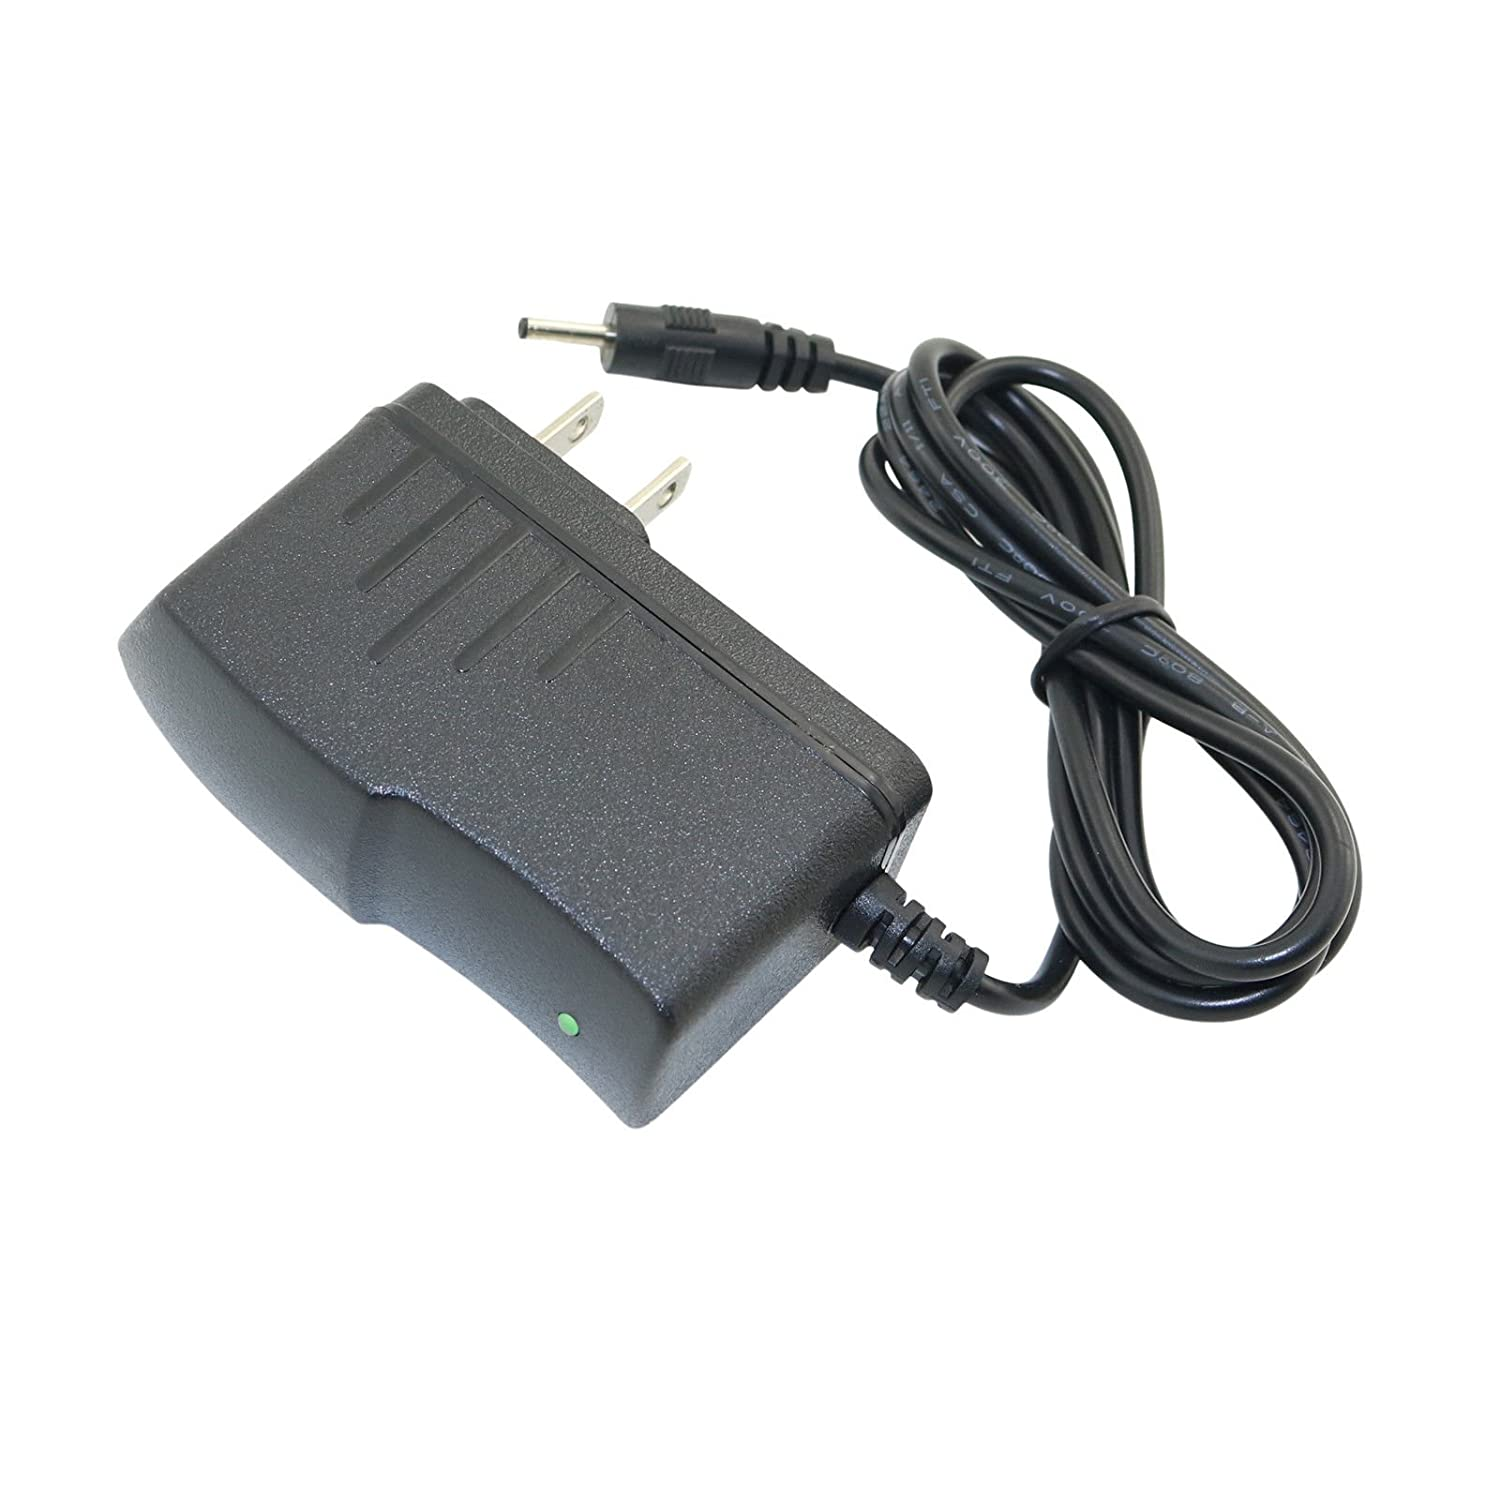 Hair Slim STA-132-D STA-132P yan AC//DC Adapter Charger Power Cord for no!no